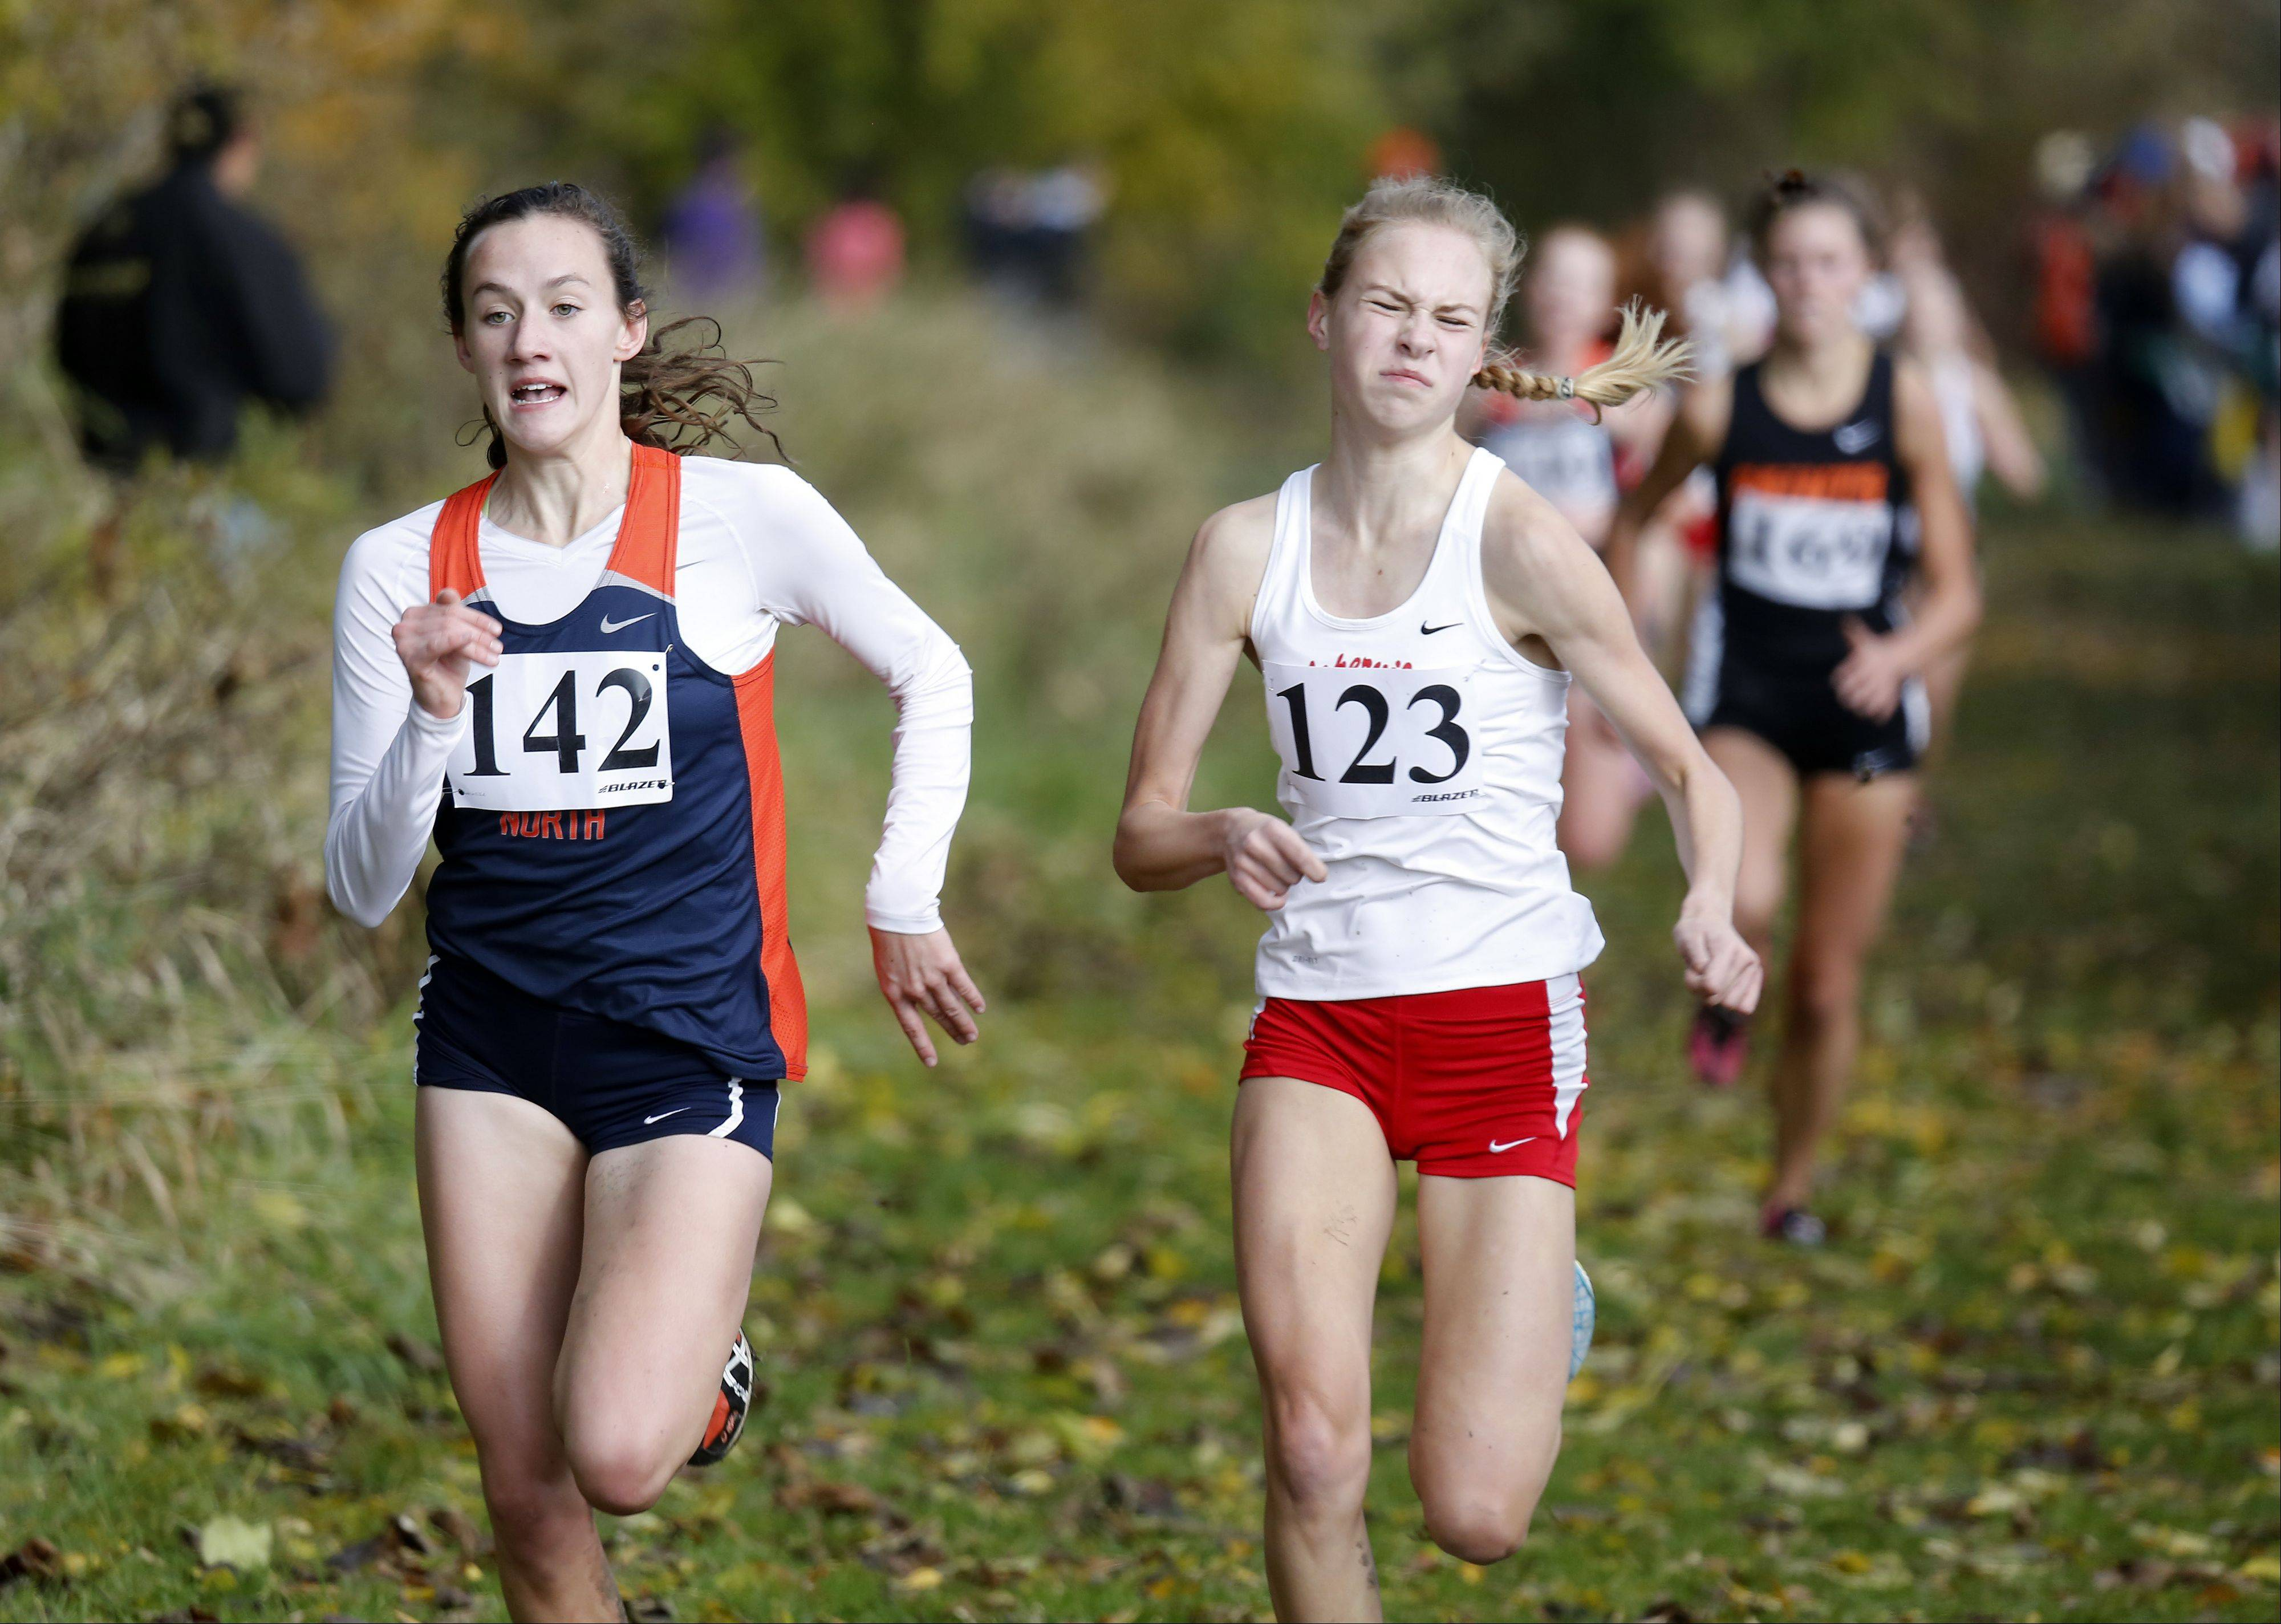 Kate Shanon of Naperville North on the way to ninth and Katie Hoffman of Naperville Central heads to 10th during the Waubonsie Valley girls cross country Sectional in Aurora.